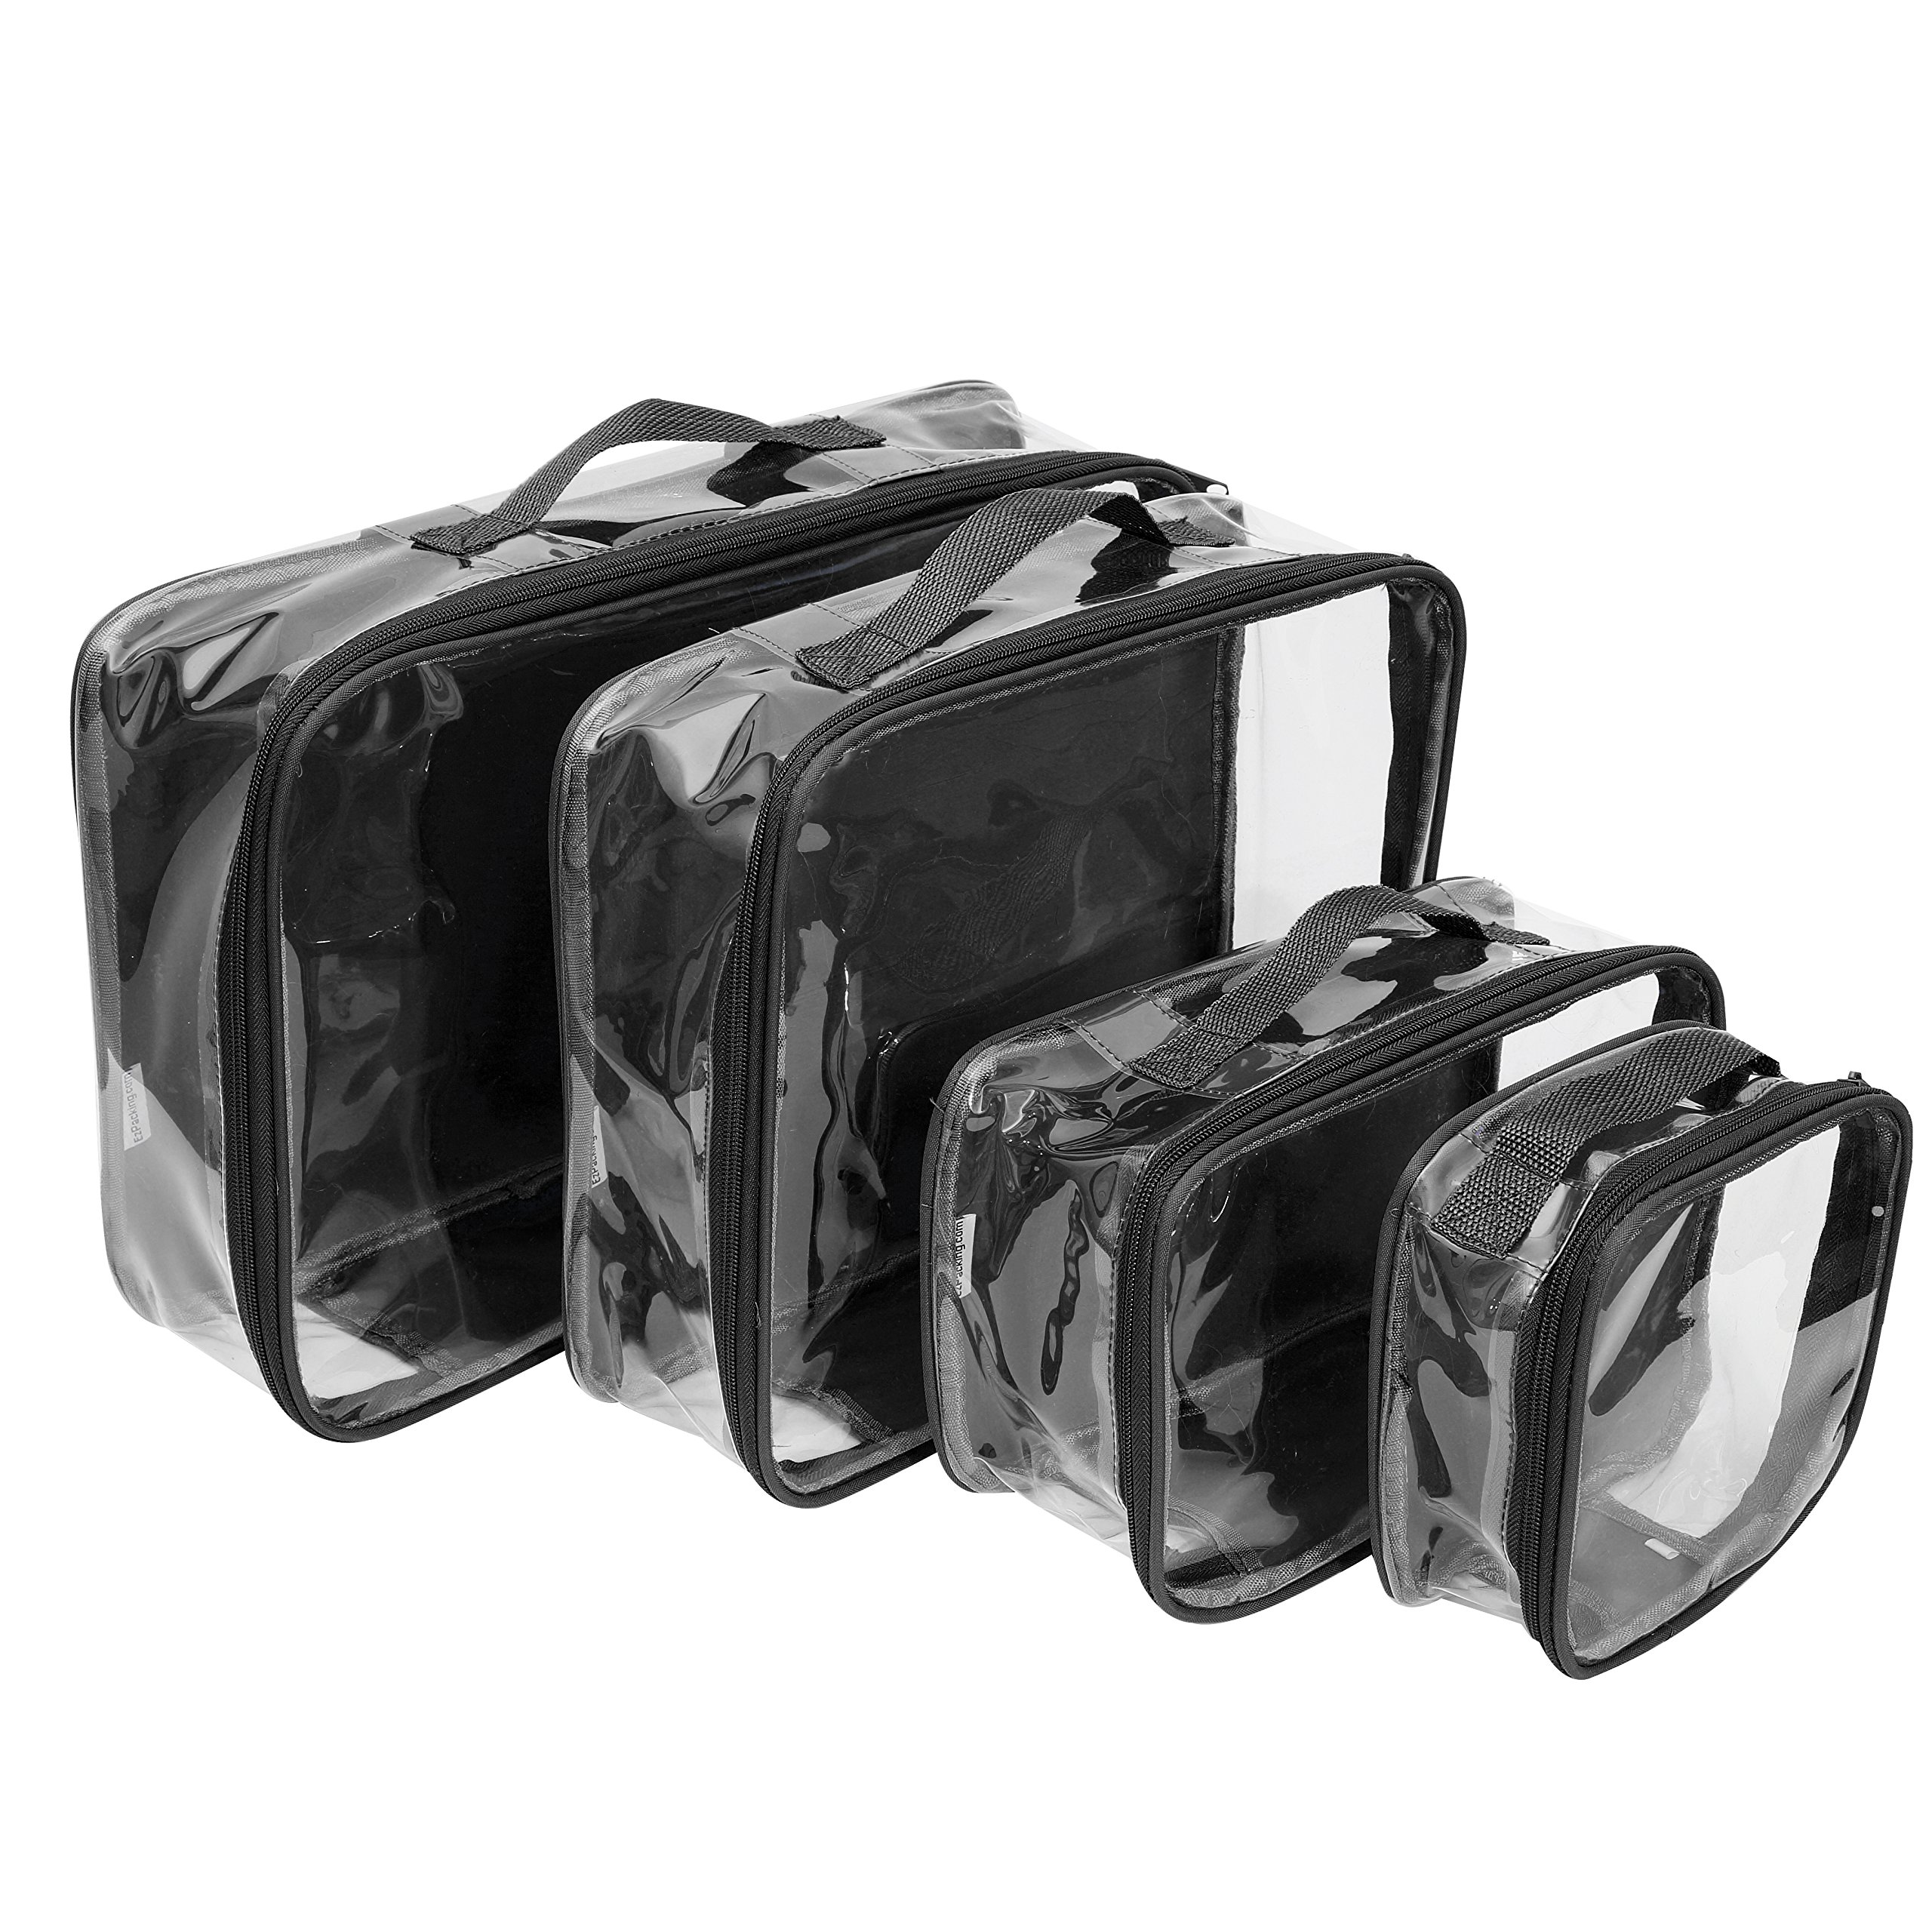 Clear Packing Cubes set of 4/Packs 7-10 Days of Clothes/Premium PVC Plastic Storage Cube (Black)